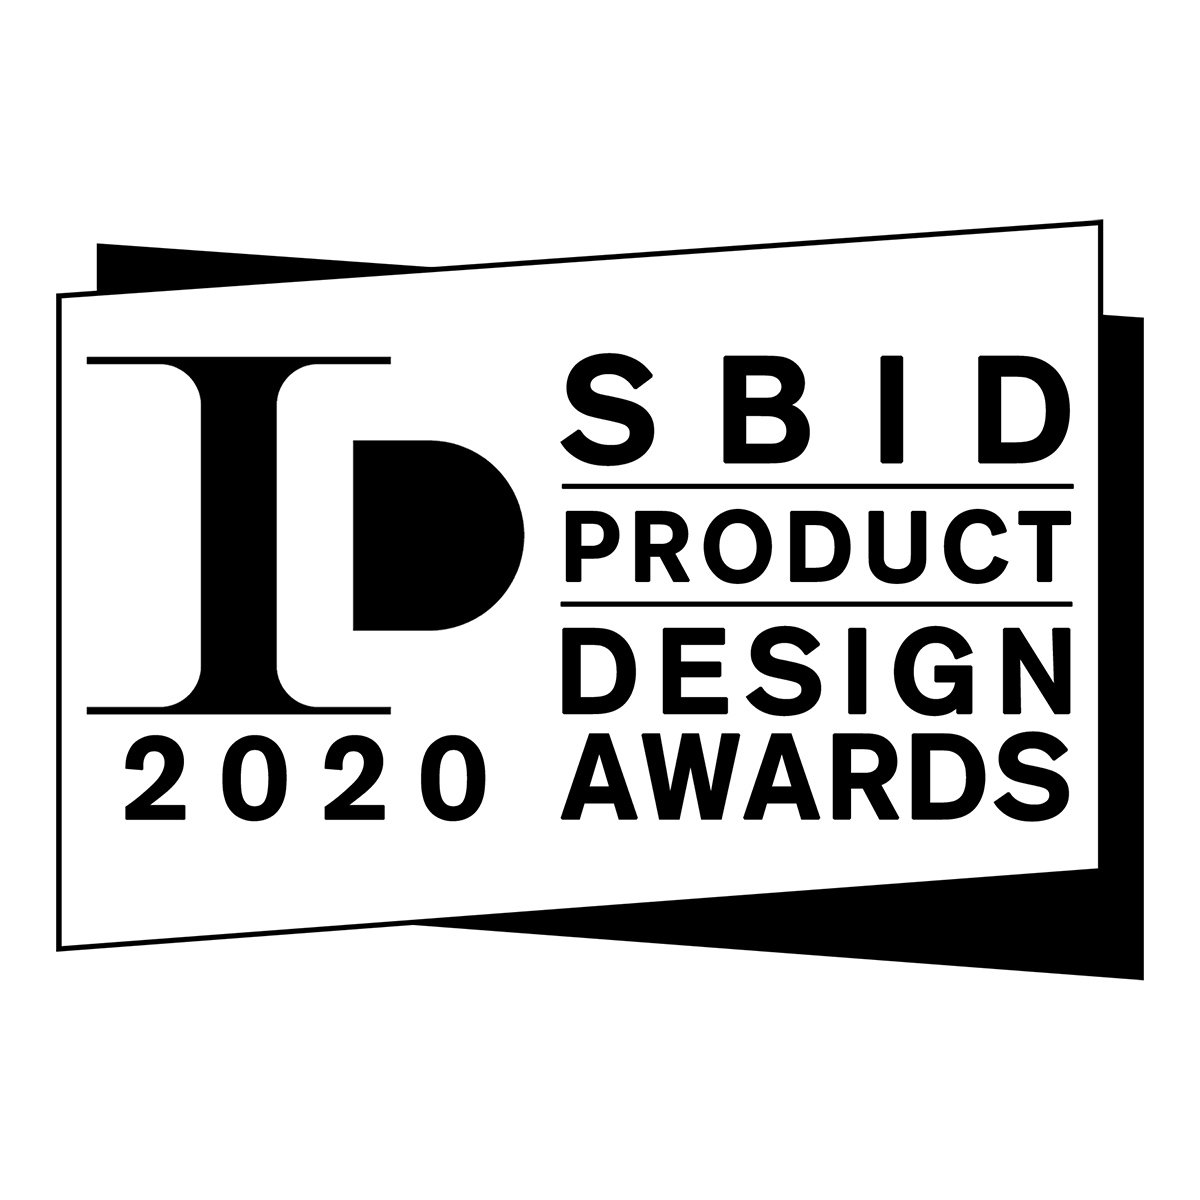 SBID Product Design Awards 2020